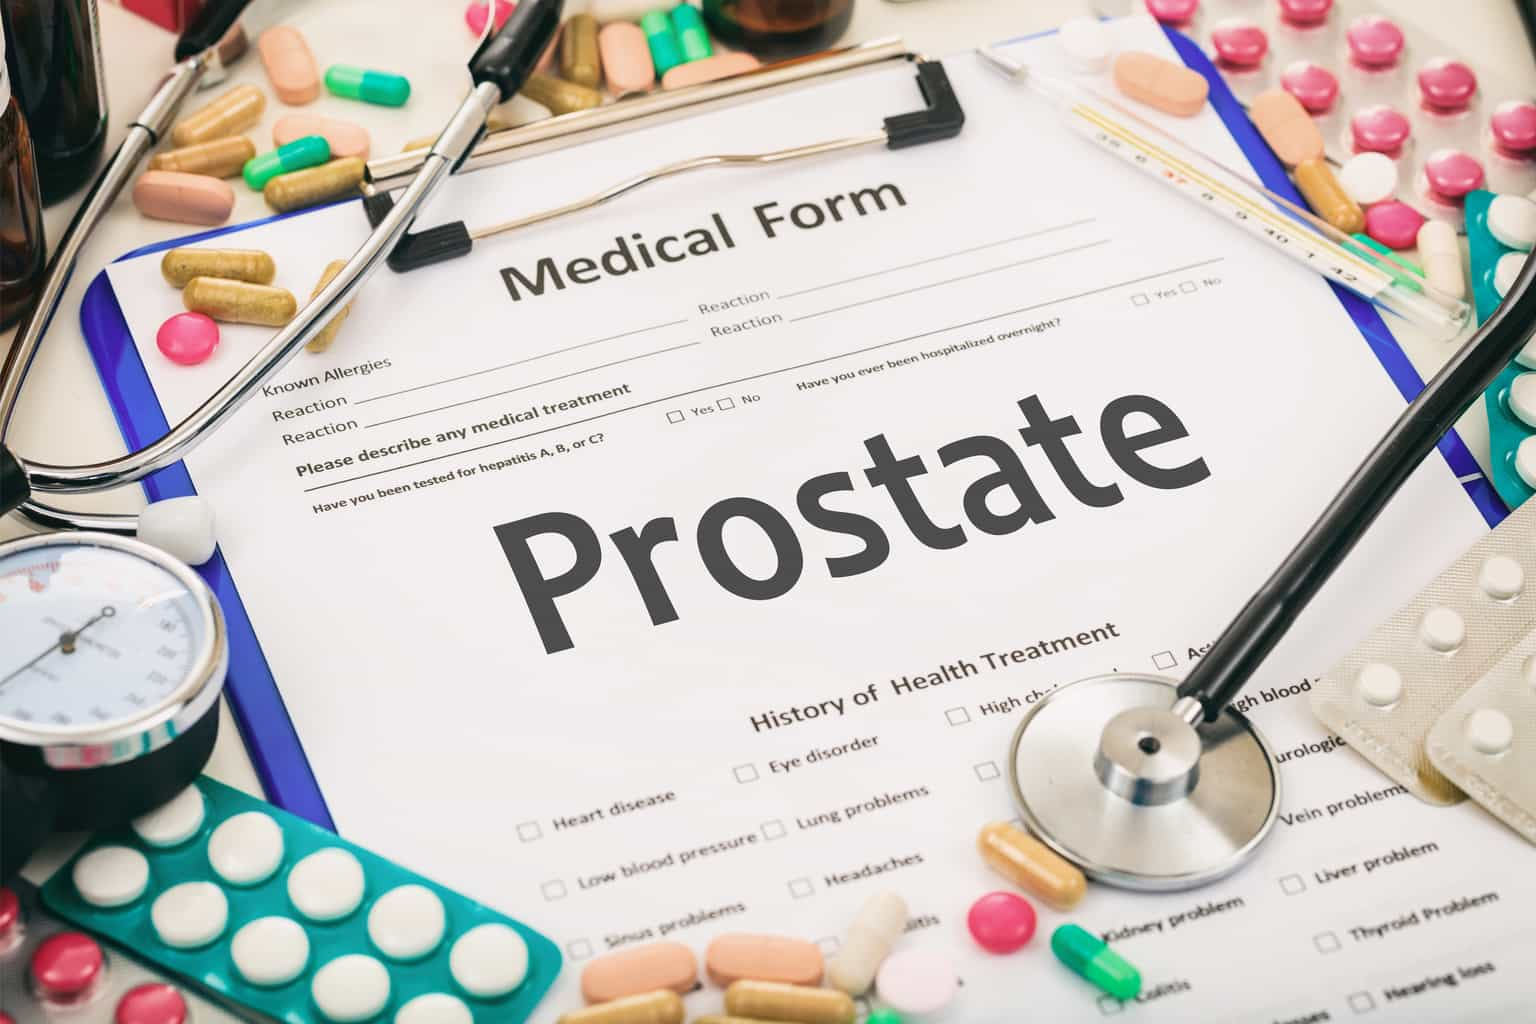 New study shows dangers of prostate medications